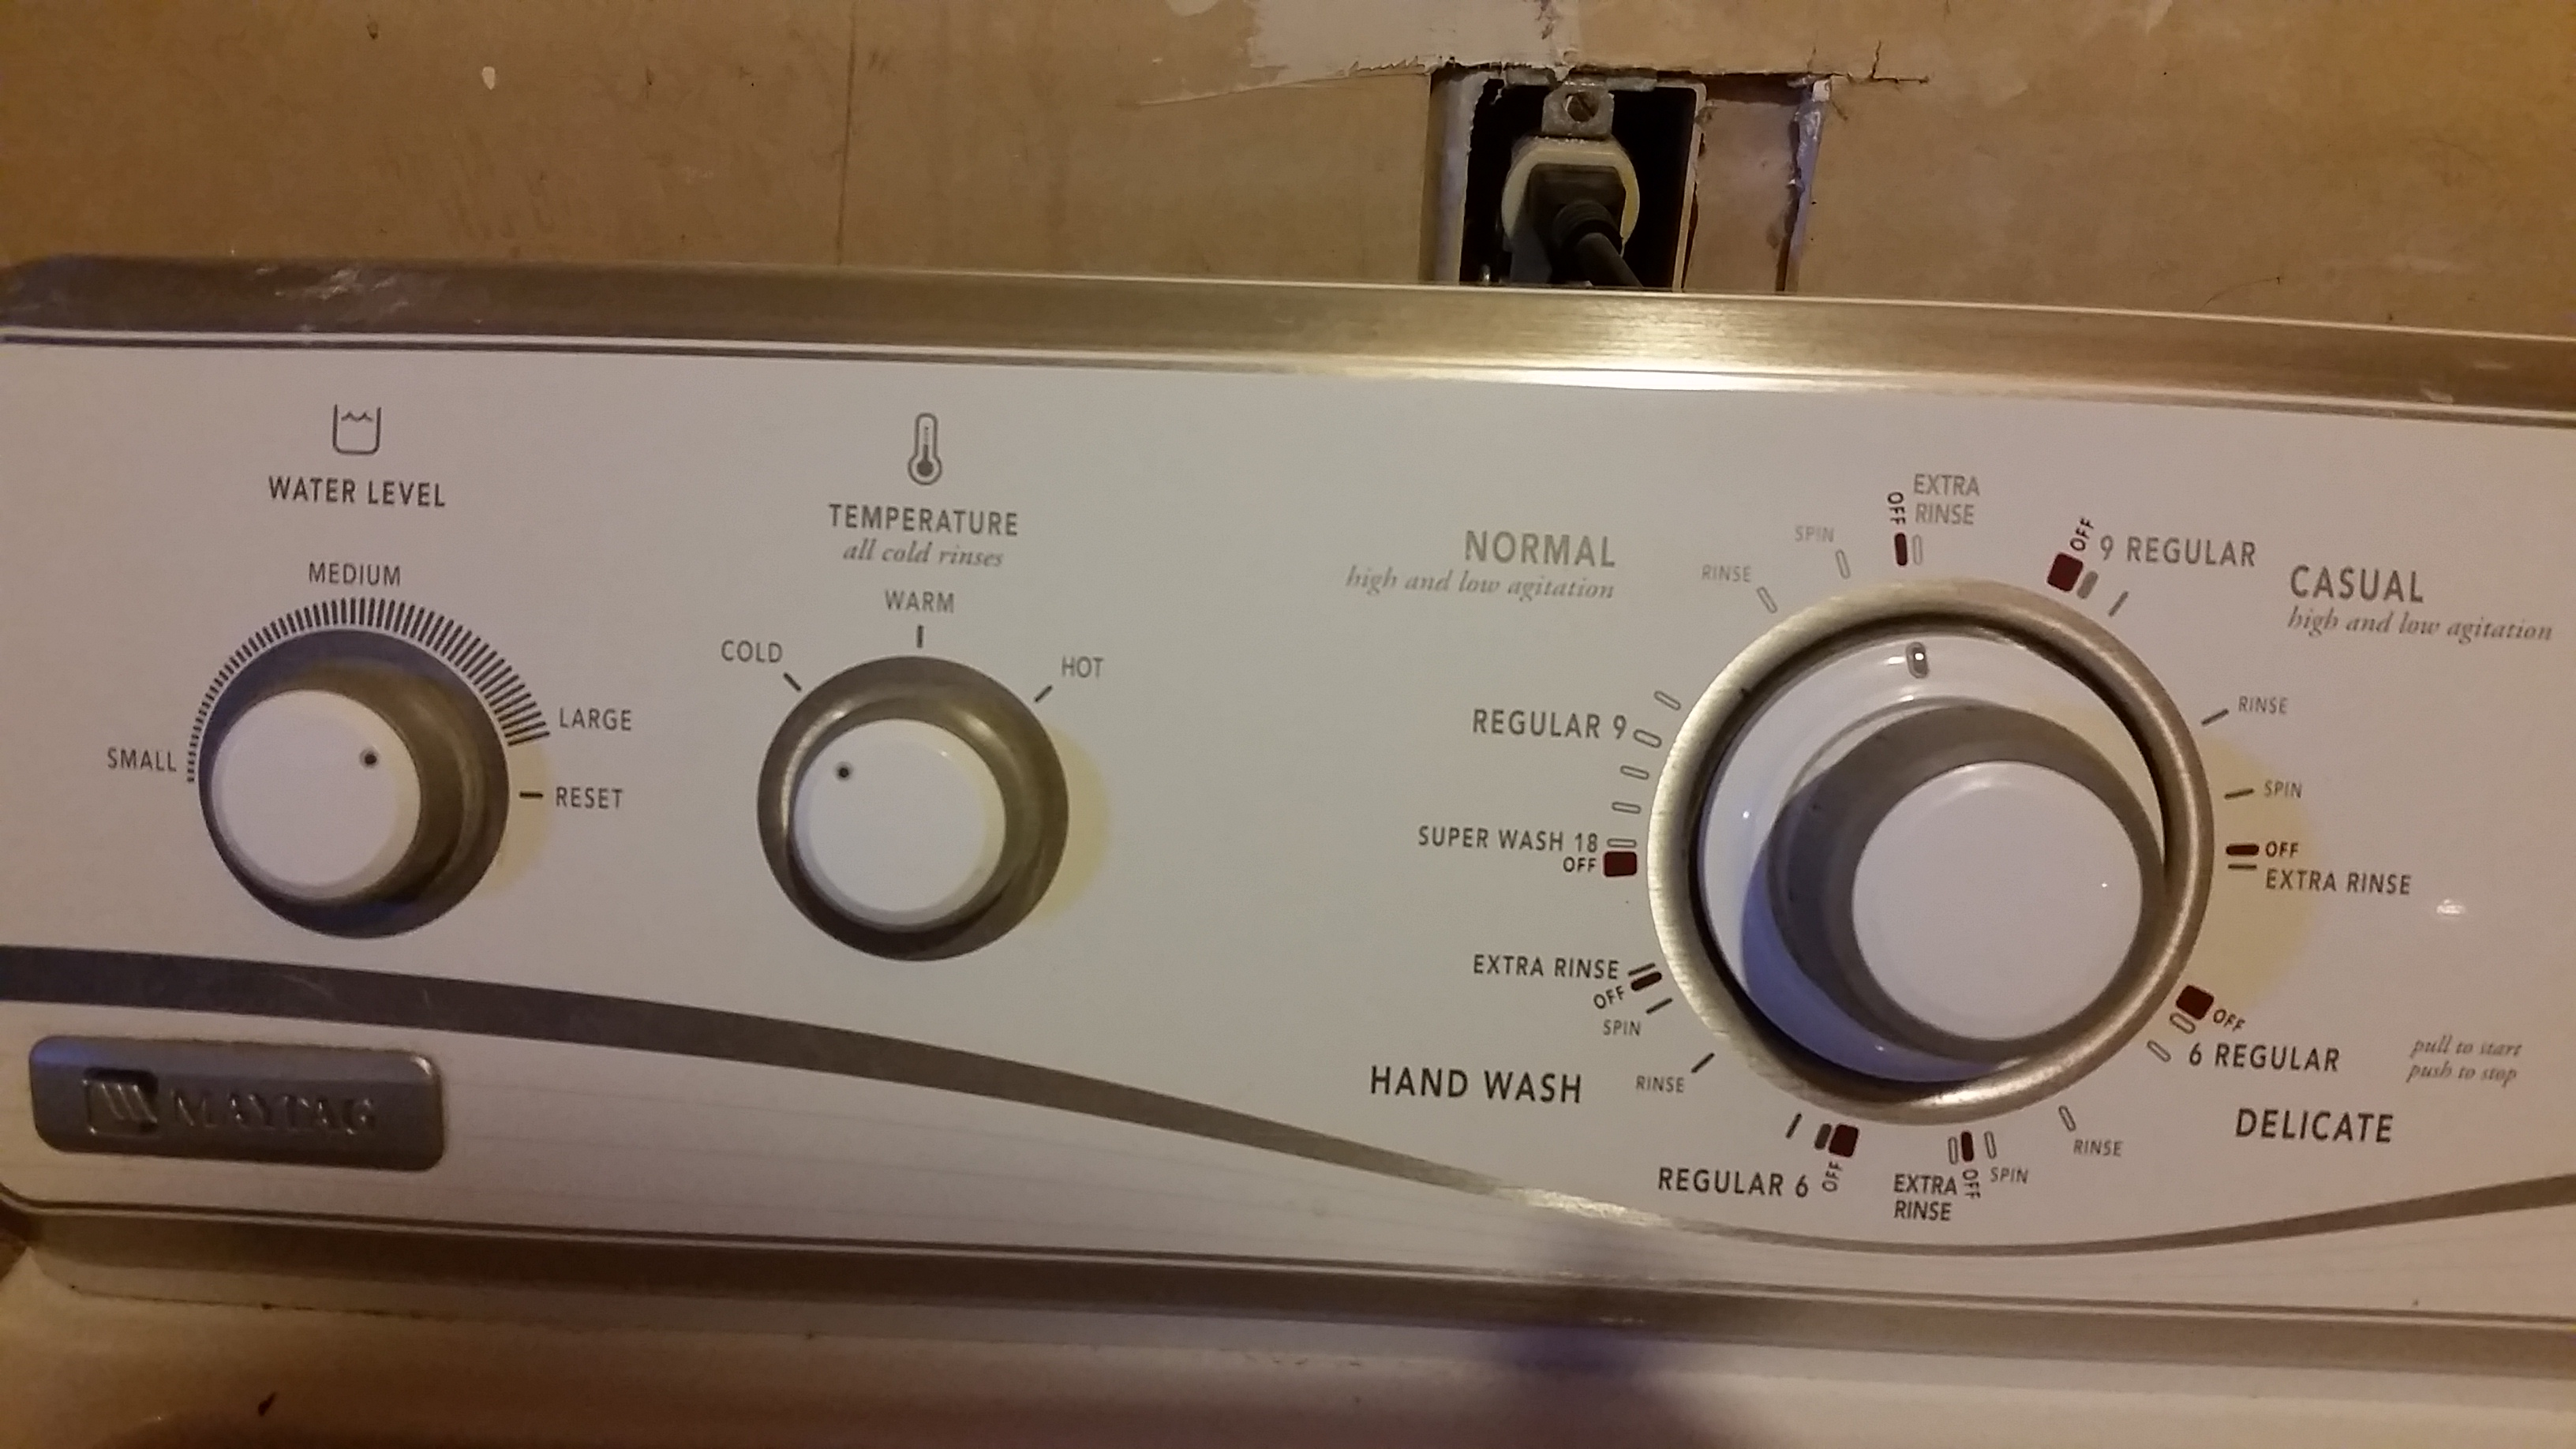 Wiring Diagram For Admiral Dryer Starting Know About Harness Maytag Images Gallery Kenmore Front Load Washer Troubleshooting Diagrams